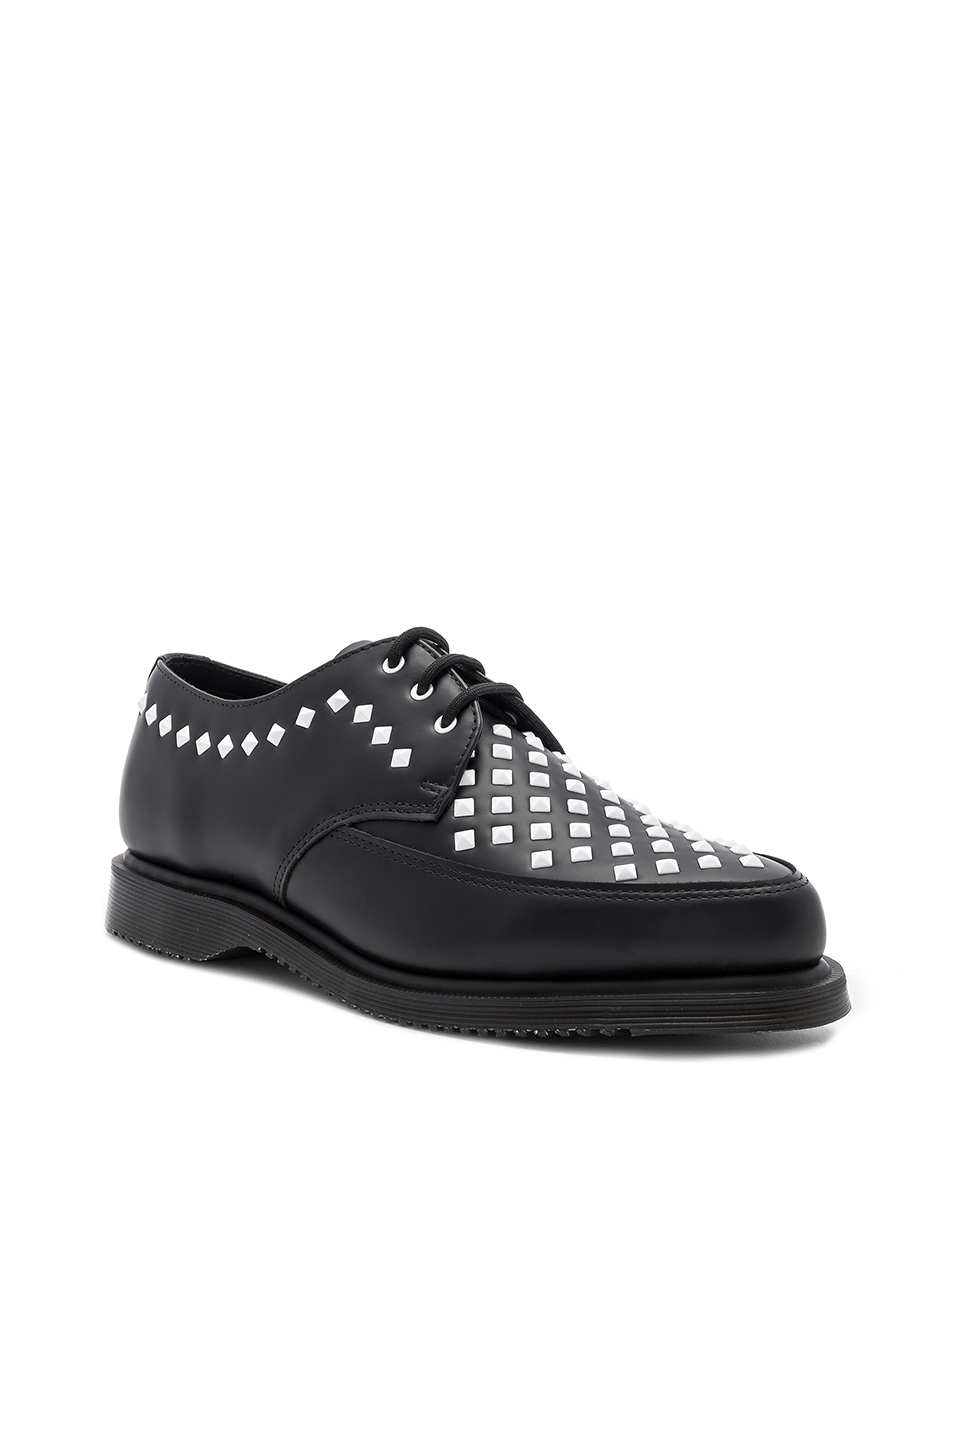 Dr. Martens Smooth Leather Rousden Stud Creepers in Black